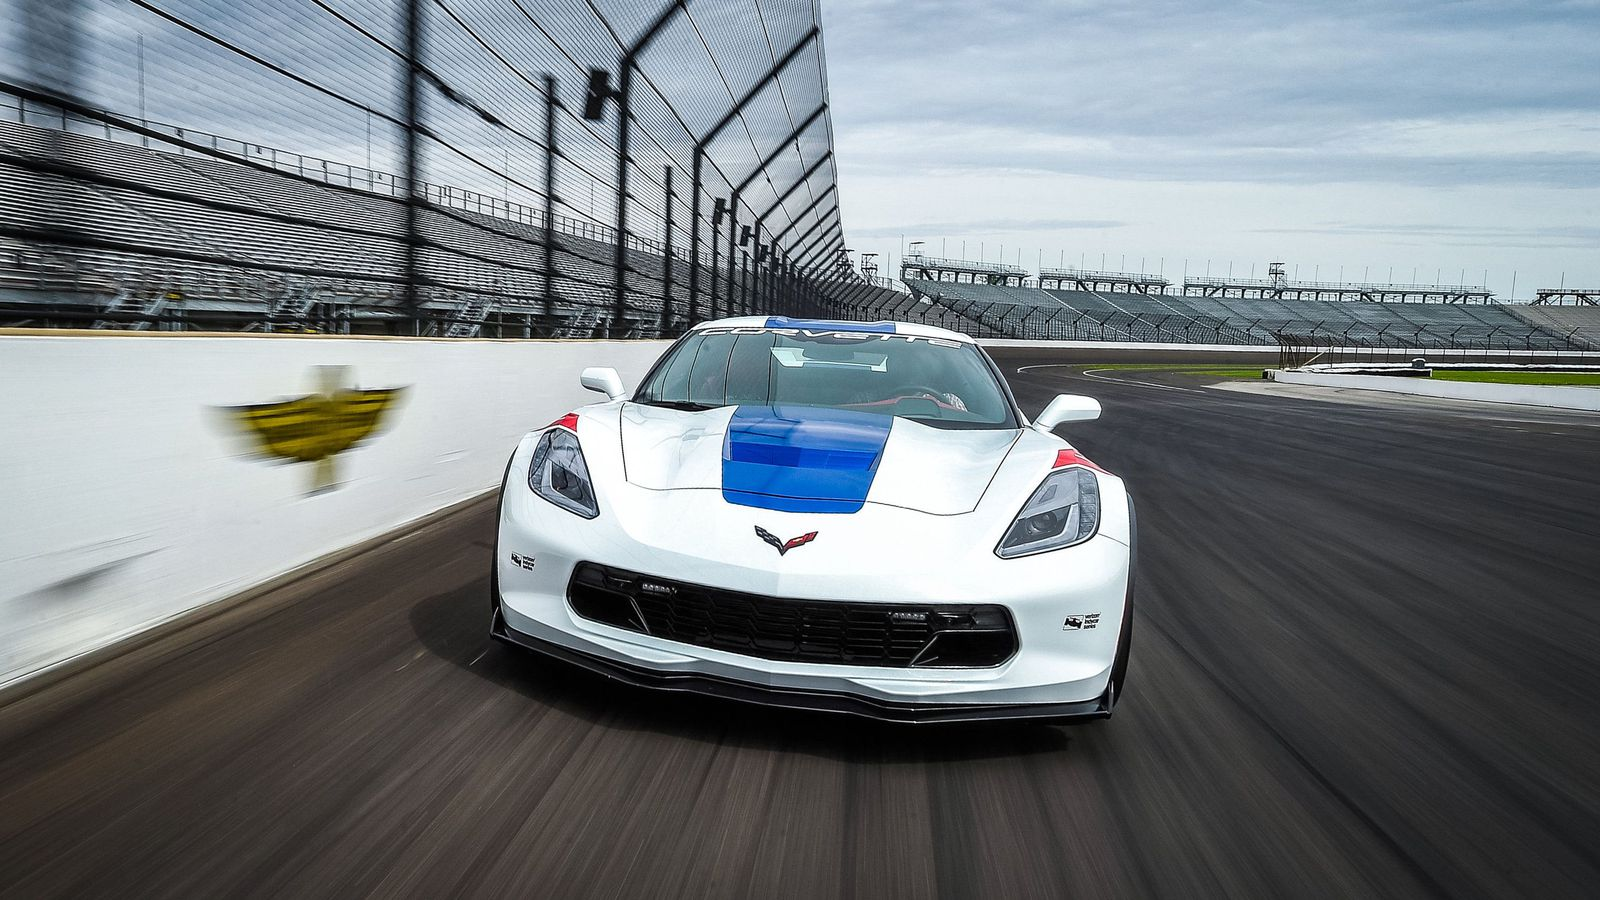 A Corvette Grand Sport will lead the 101st running of America's favorite milk-chugging contest.